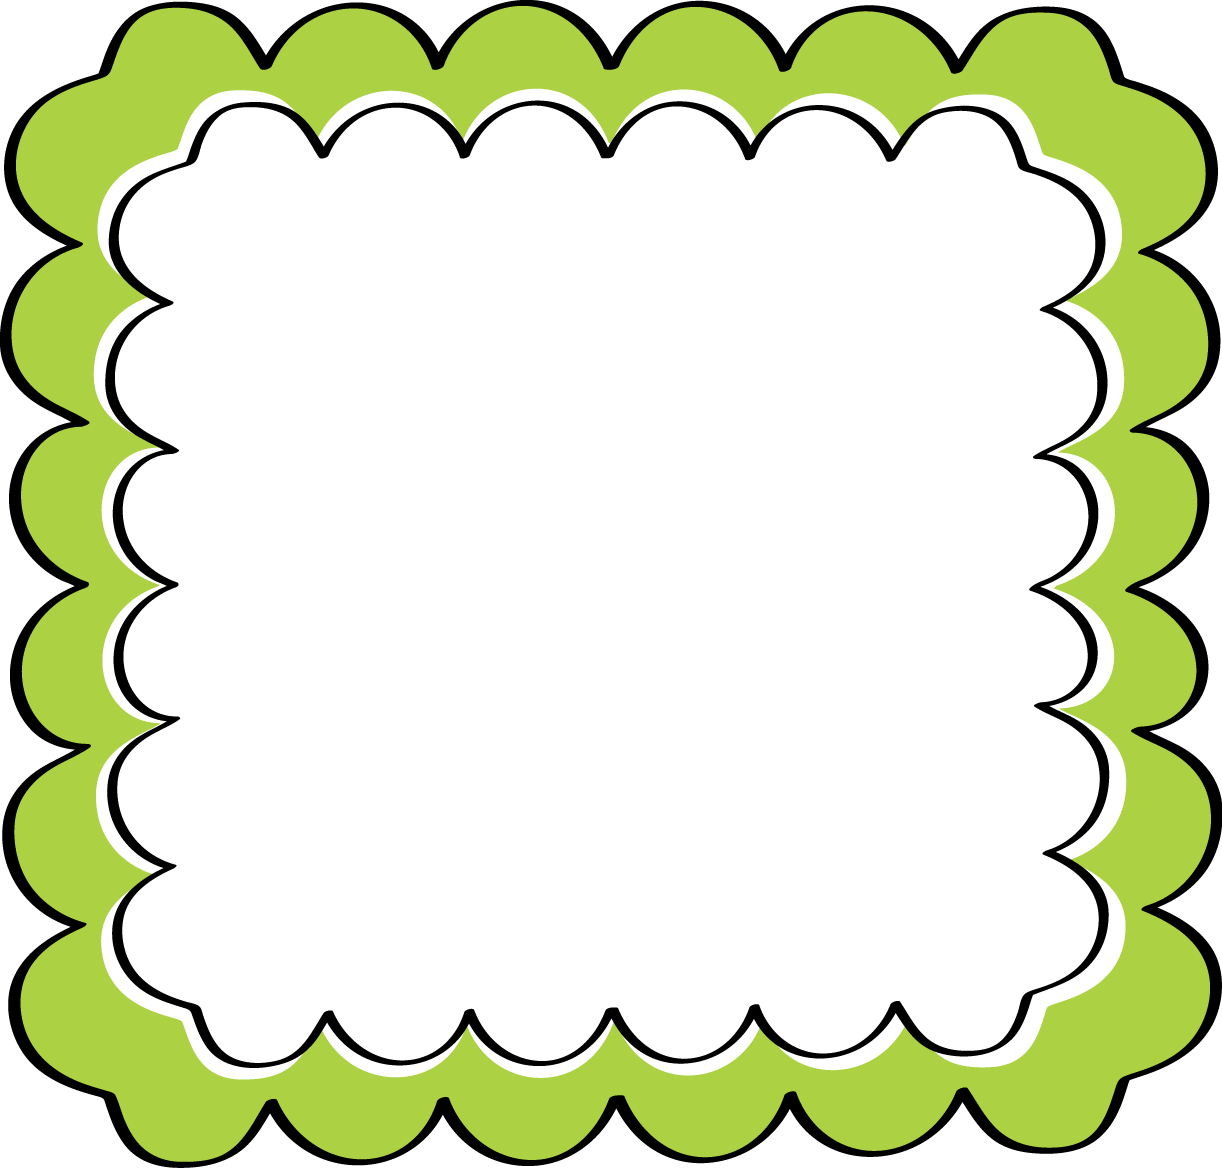 Green Scalloped Frame - green and black scalloped frame with an inner ...